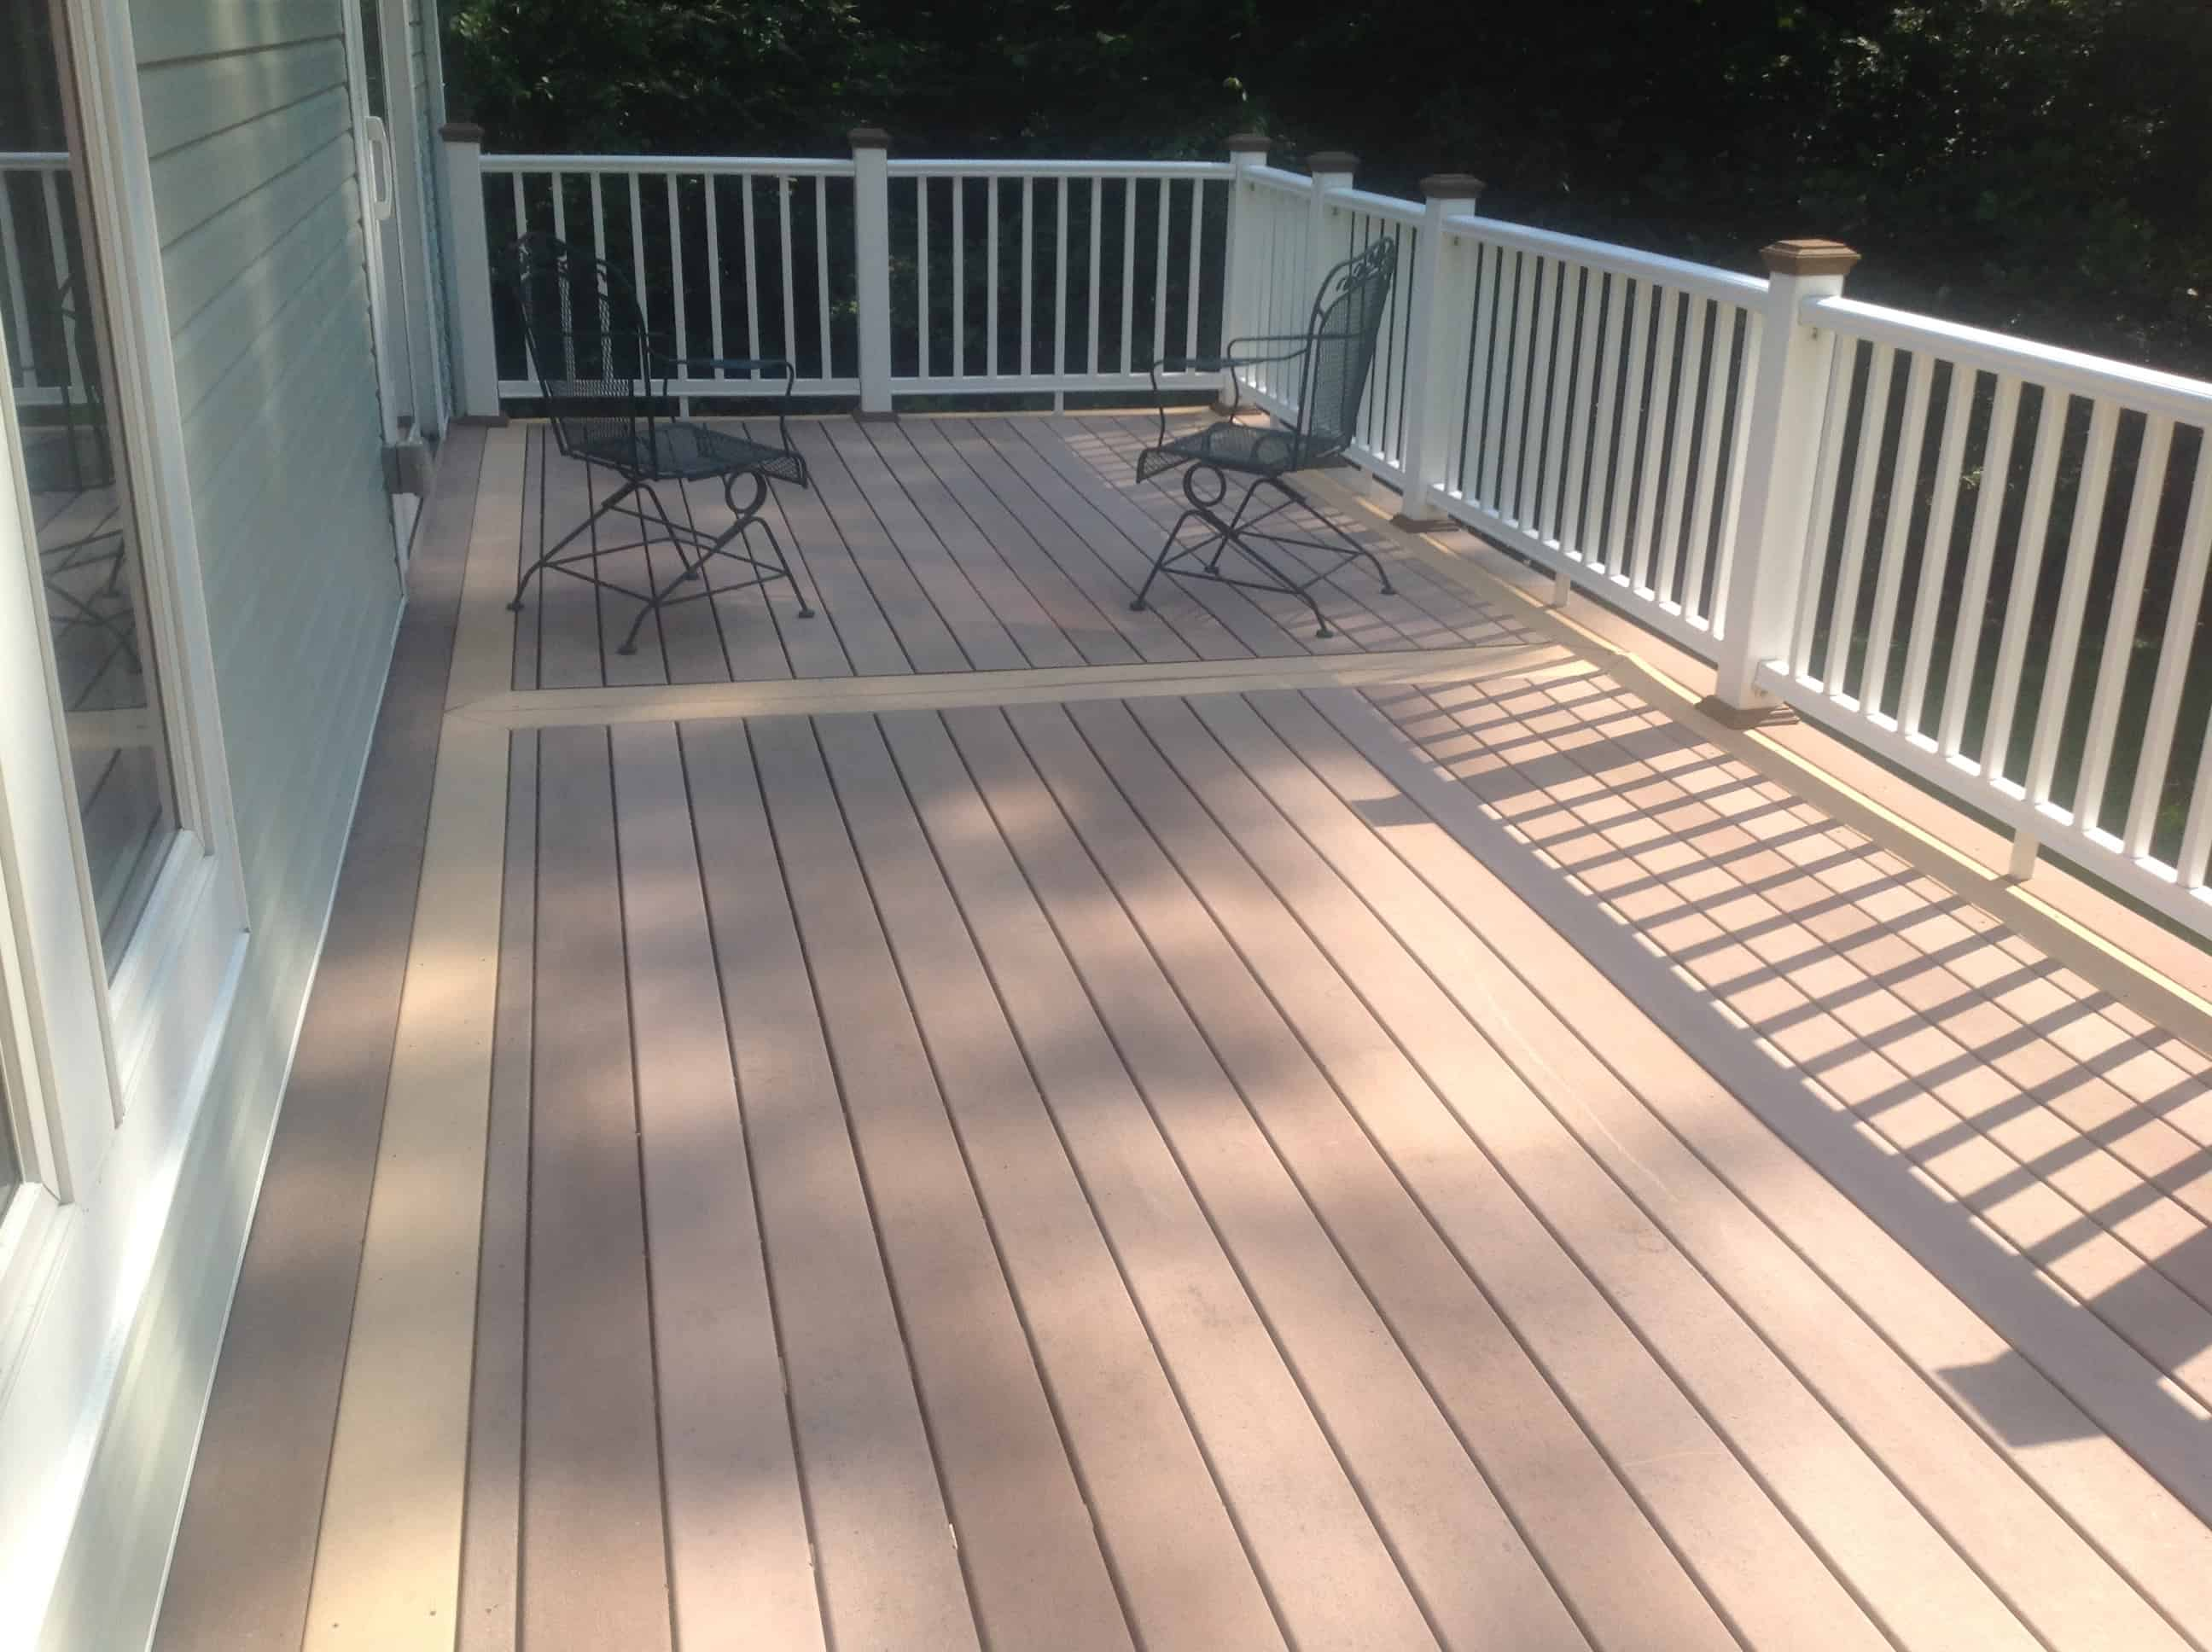 Home Depot Cedar Deck Boards Corte Clean Composite Deck Dock Fence Cleaner Mold Mildew Grease